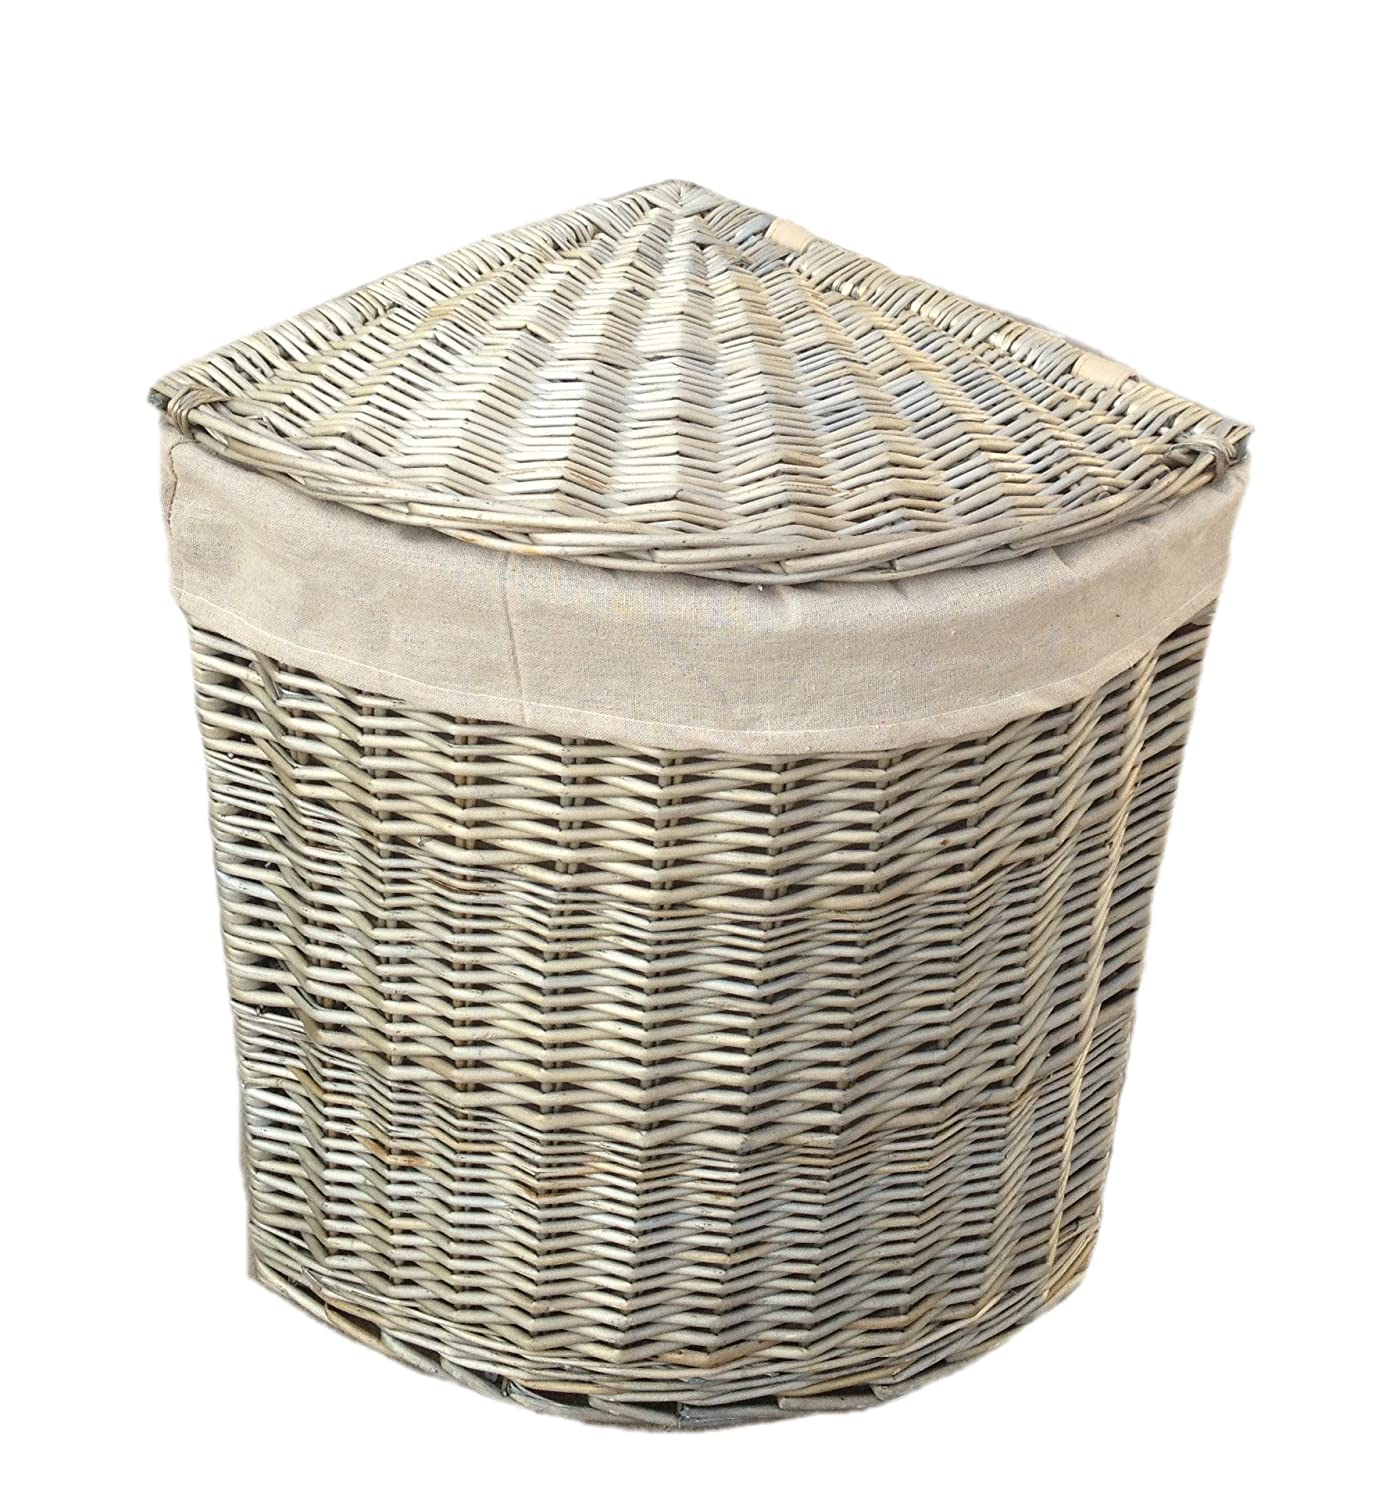 Decorative Laundry Hamper With Lid Uk Webnuggetz Com